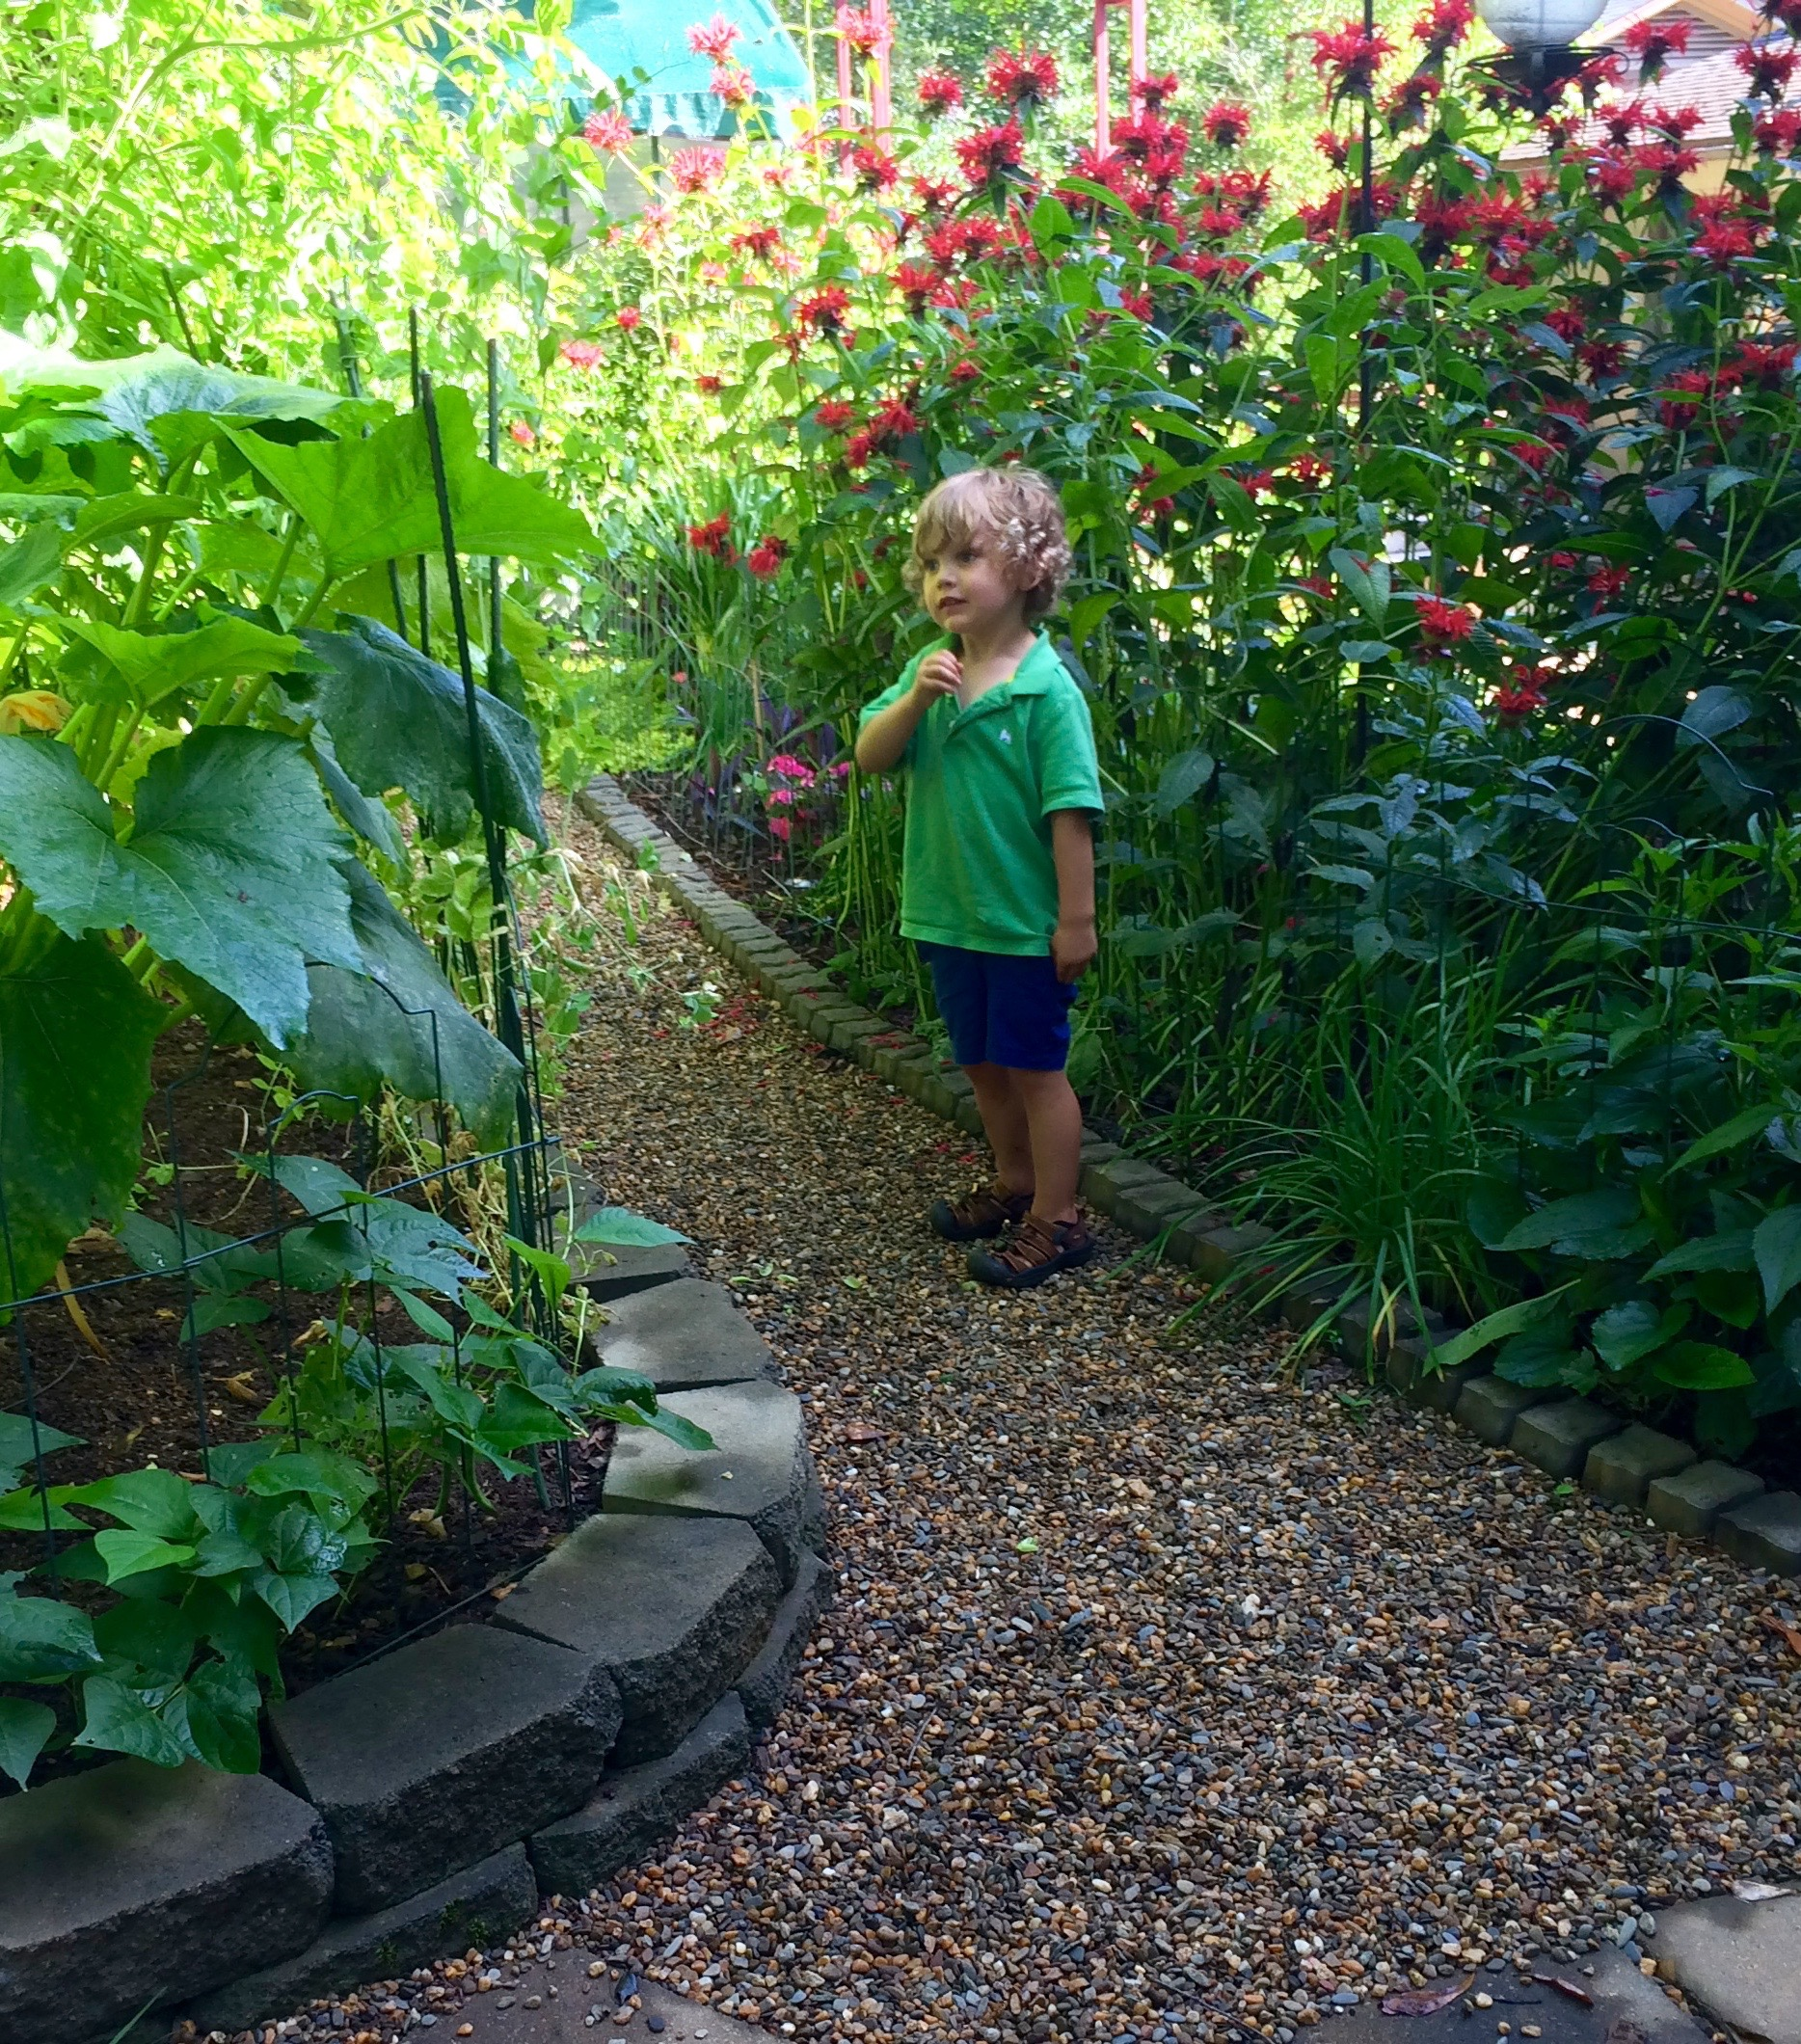 Charlie in Mimi'sgarden......His grandfather Charlie would love this...